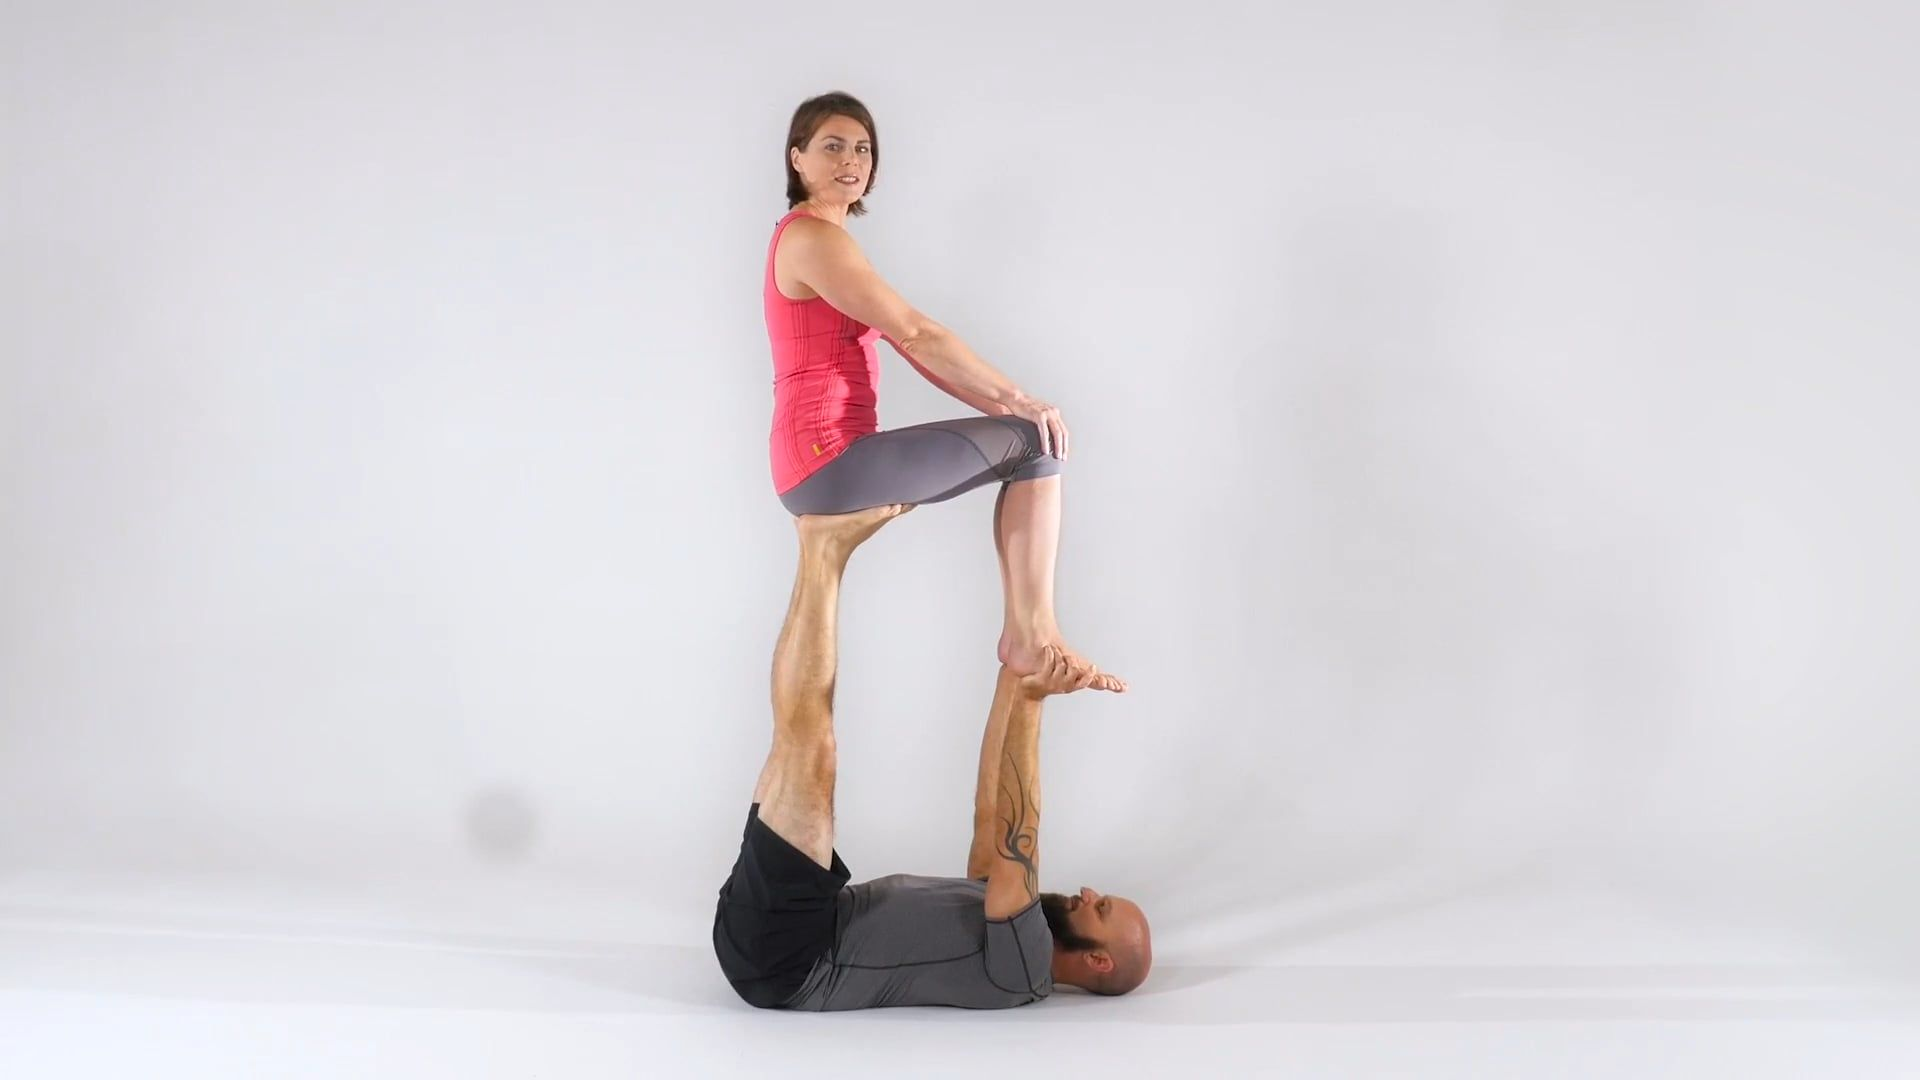 AcroYoga Tutorial: Throne and Throne Presses https://yogainternational.com/article/view/acroyoga-tutorial-throne-and-throne-presses#.V3l15AkaGog.twitter